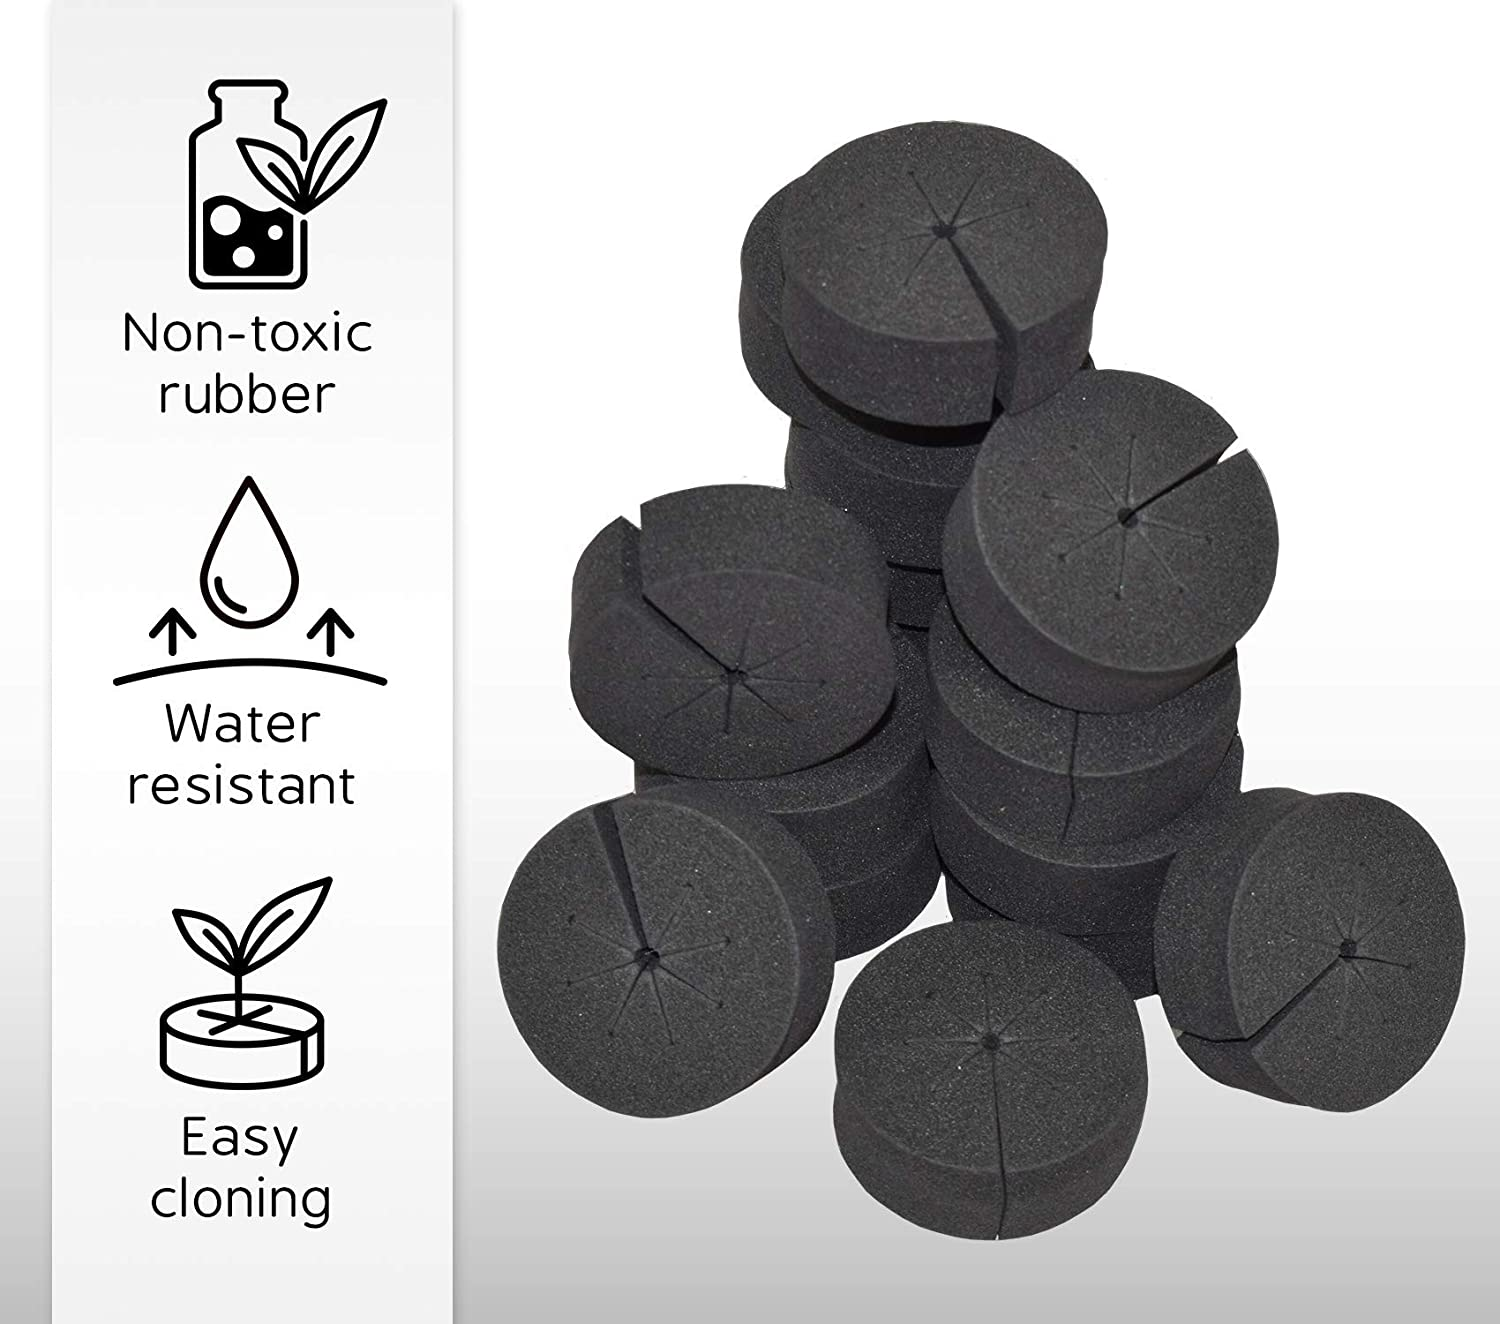 Weather and Water Resistant fits 2 inch net pots 50 Made in USA XCEL 50 Pack Cloning Collar Inserts Premium Rubber